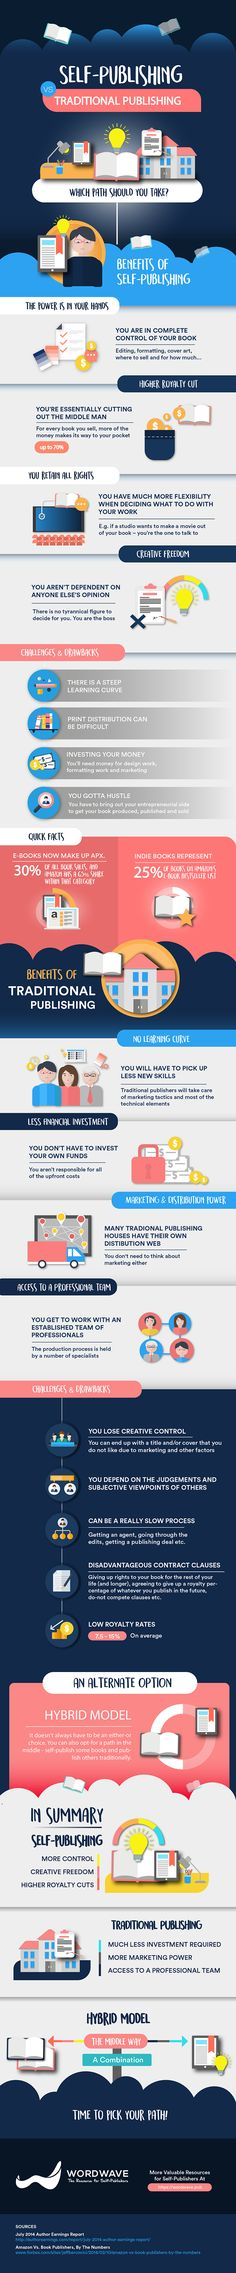 Self-Publishing vs Traditional Publishing – Which Path Should You Take? (Infographic) | Today authors have much more options when it comes to choosing how they publish, distribute and reach people with their work.   We have made this infographic to give you a solid overview of the both choices at your disposal. You'll find laid out the benefits and drawbacks of traditional publishing as well as the benefits and drawbacks of self-publishing.